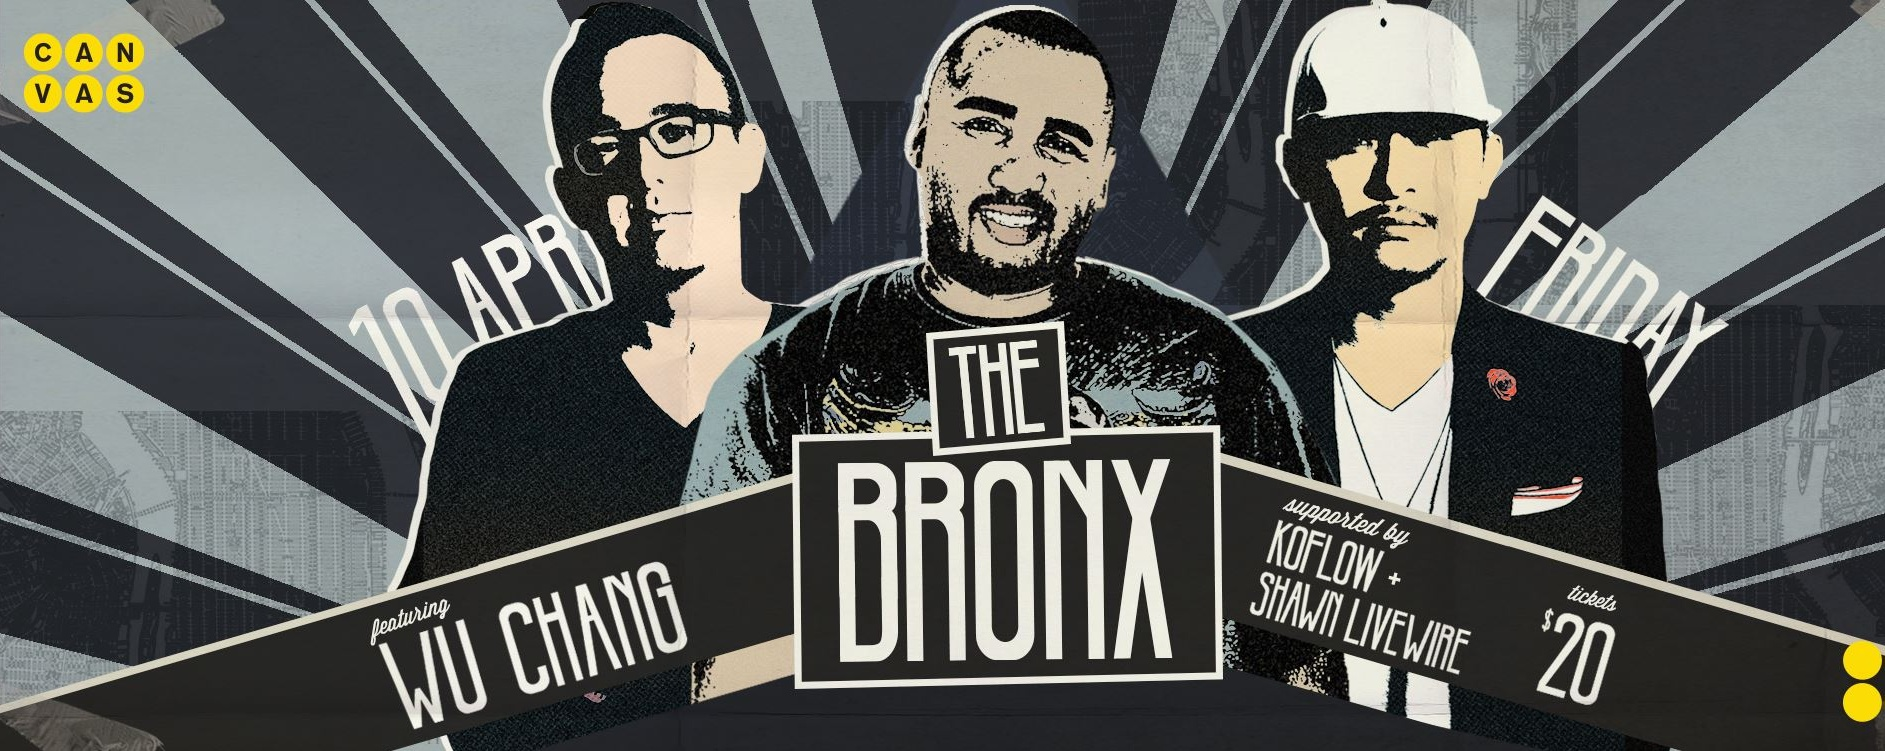 The Bronx ft. Wu Chang (US)